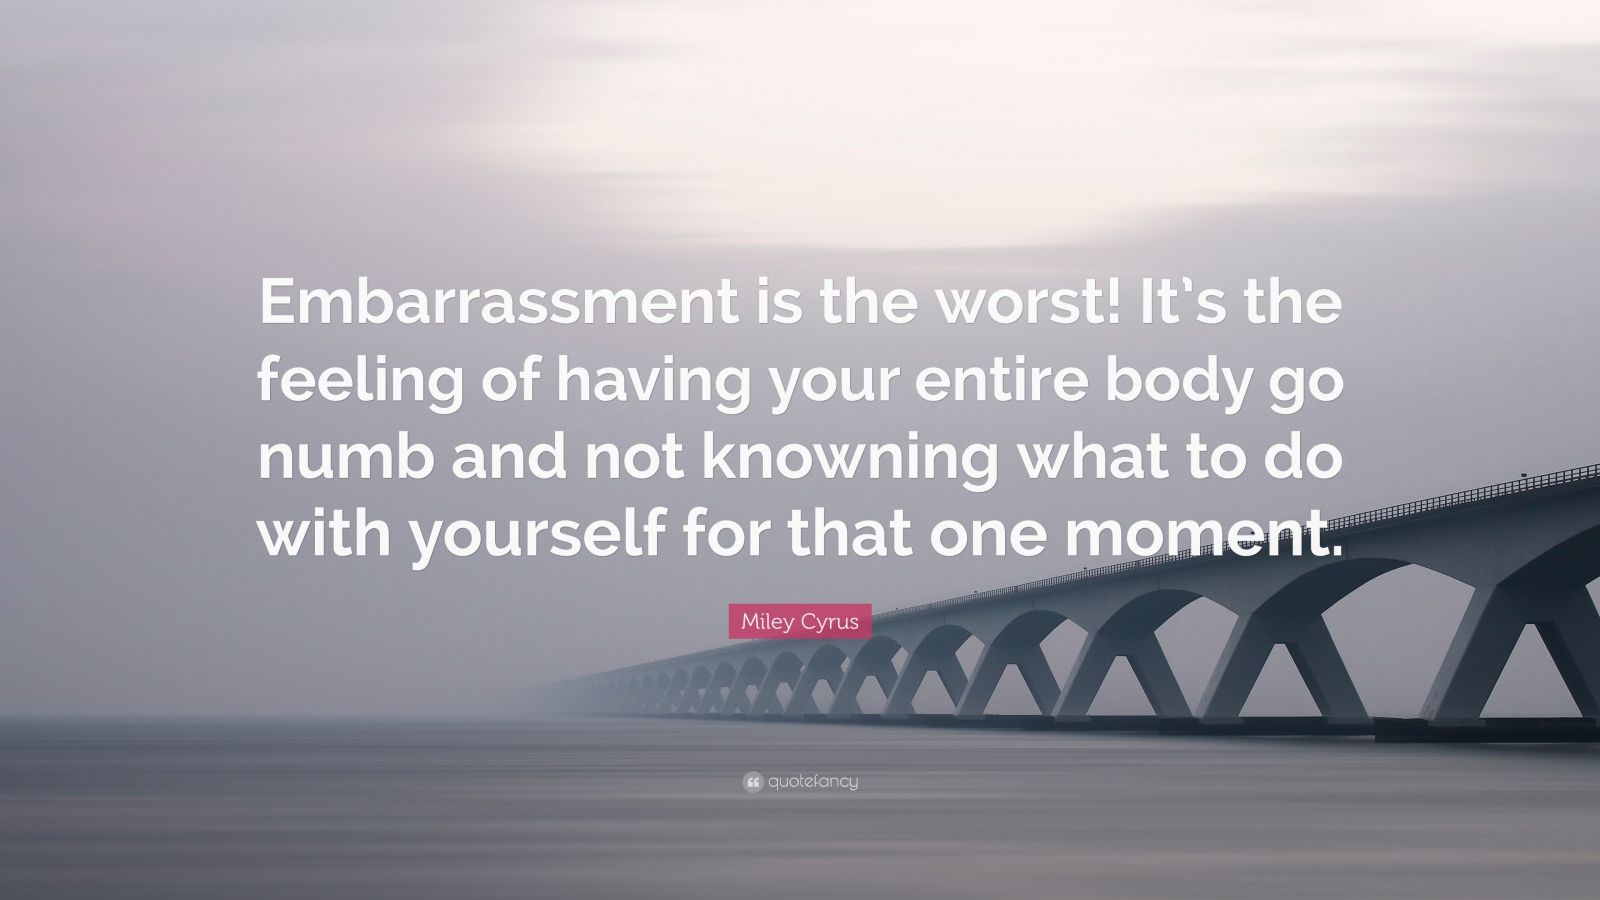 """Miley Cyrus Quote: """"Embarrassment is the worst! It's the feeling of having your entire body go numb and not knowning what to do with yourself for that one moment."""""""